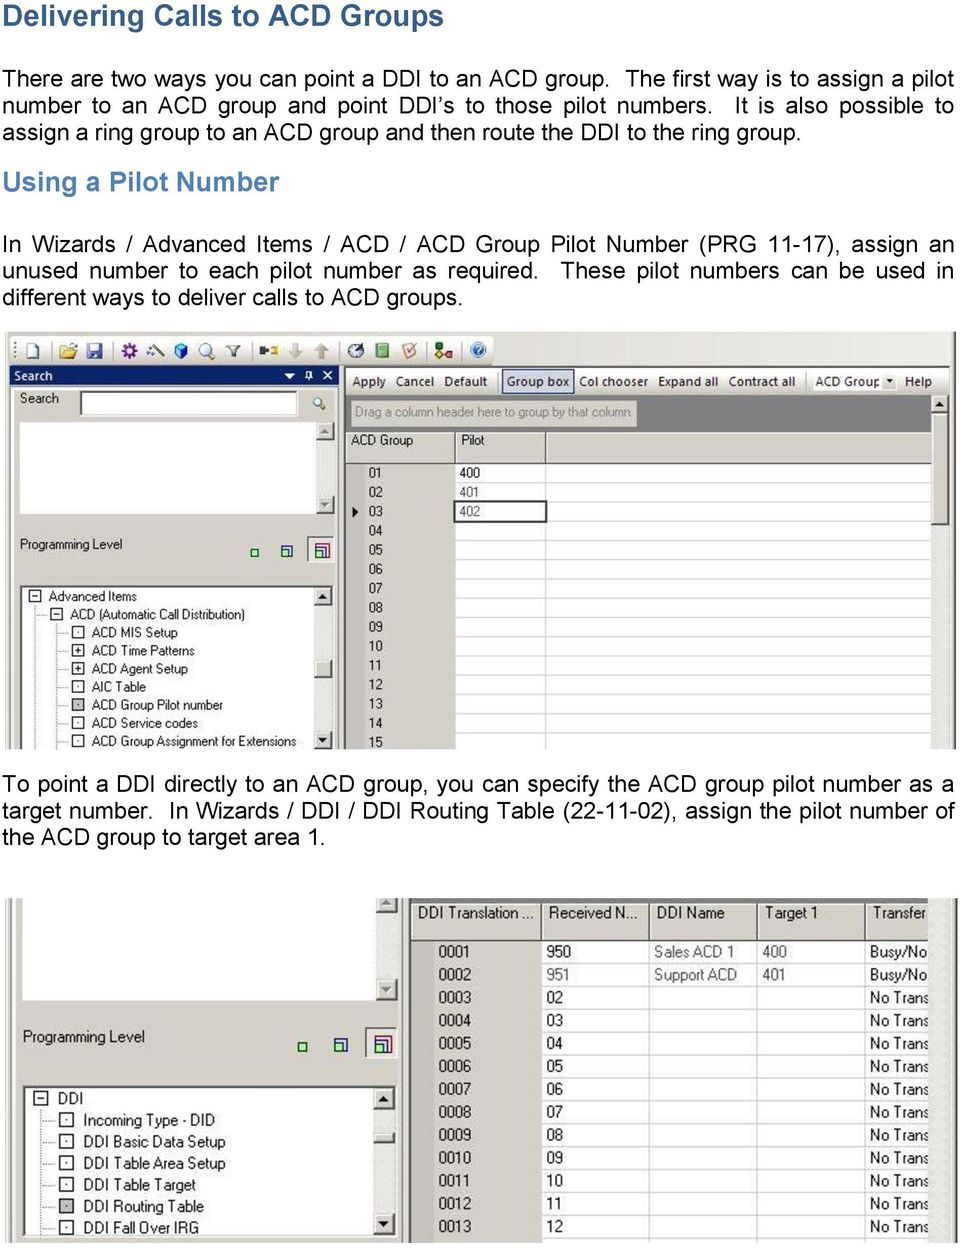 It is also possible to assign a ring group to an ACD group and then route the DDI to the ring group.